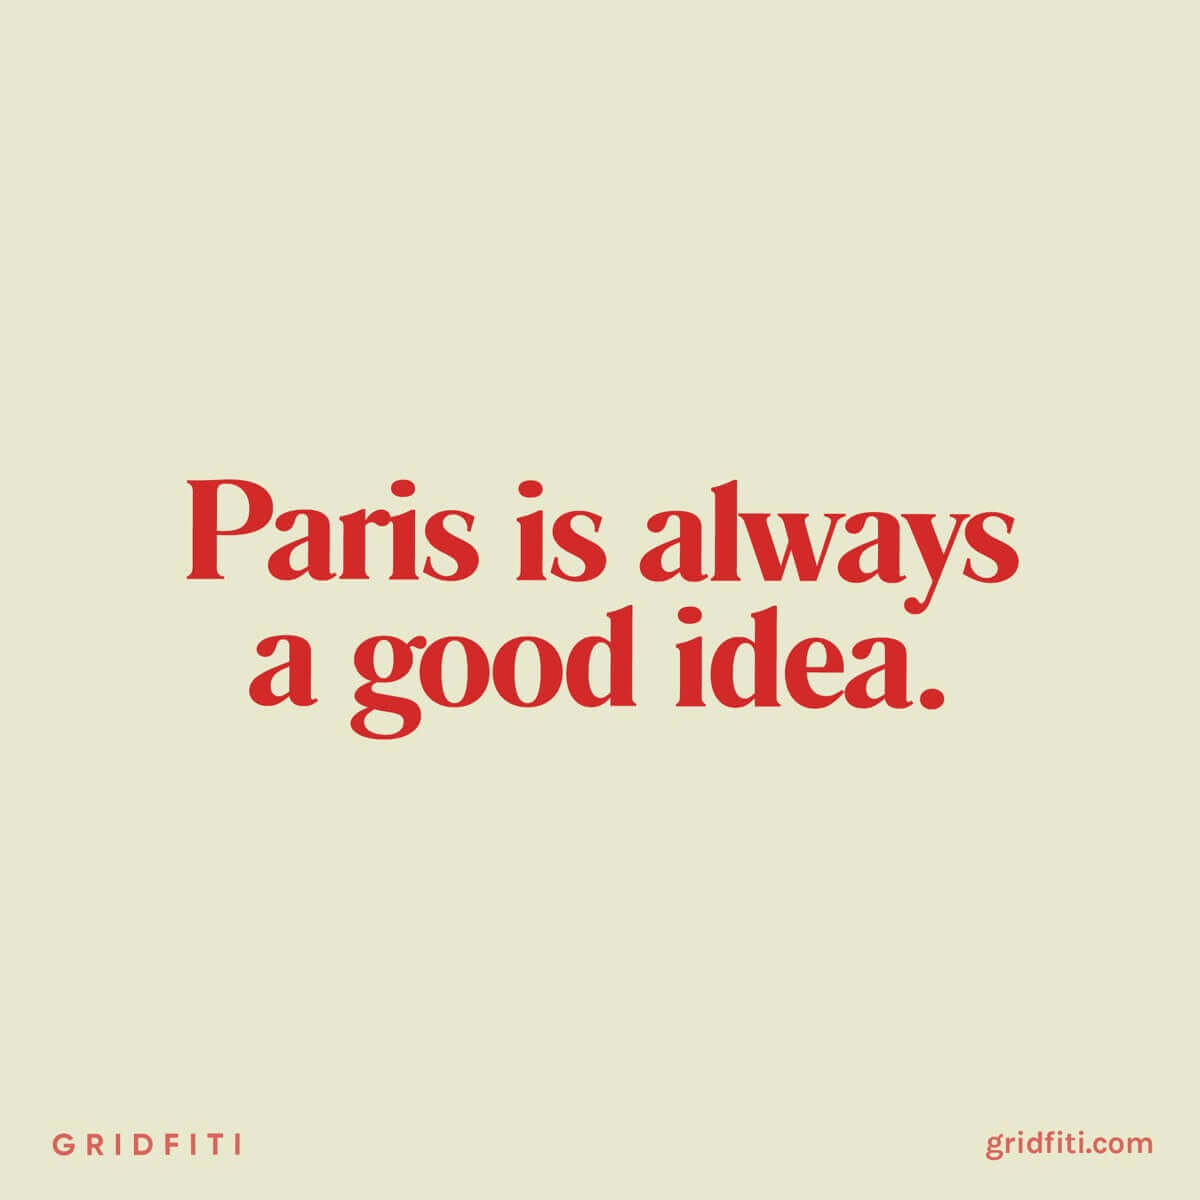 Paris is always a good idea quote